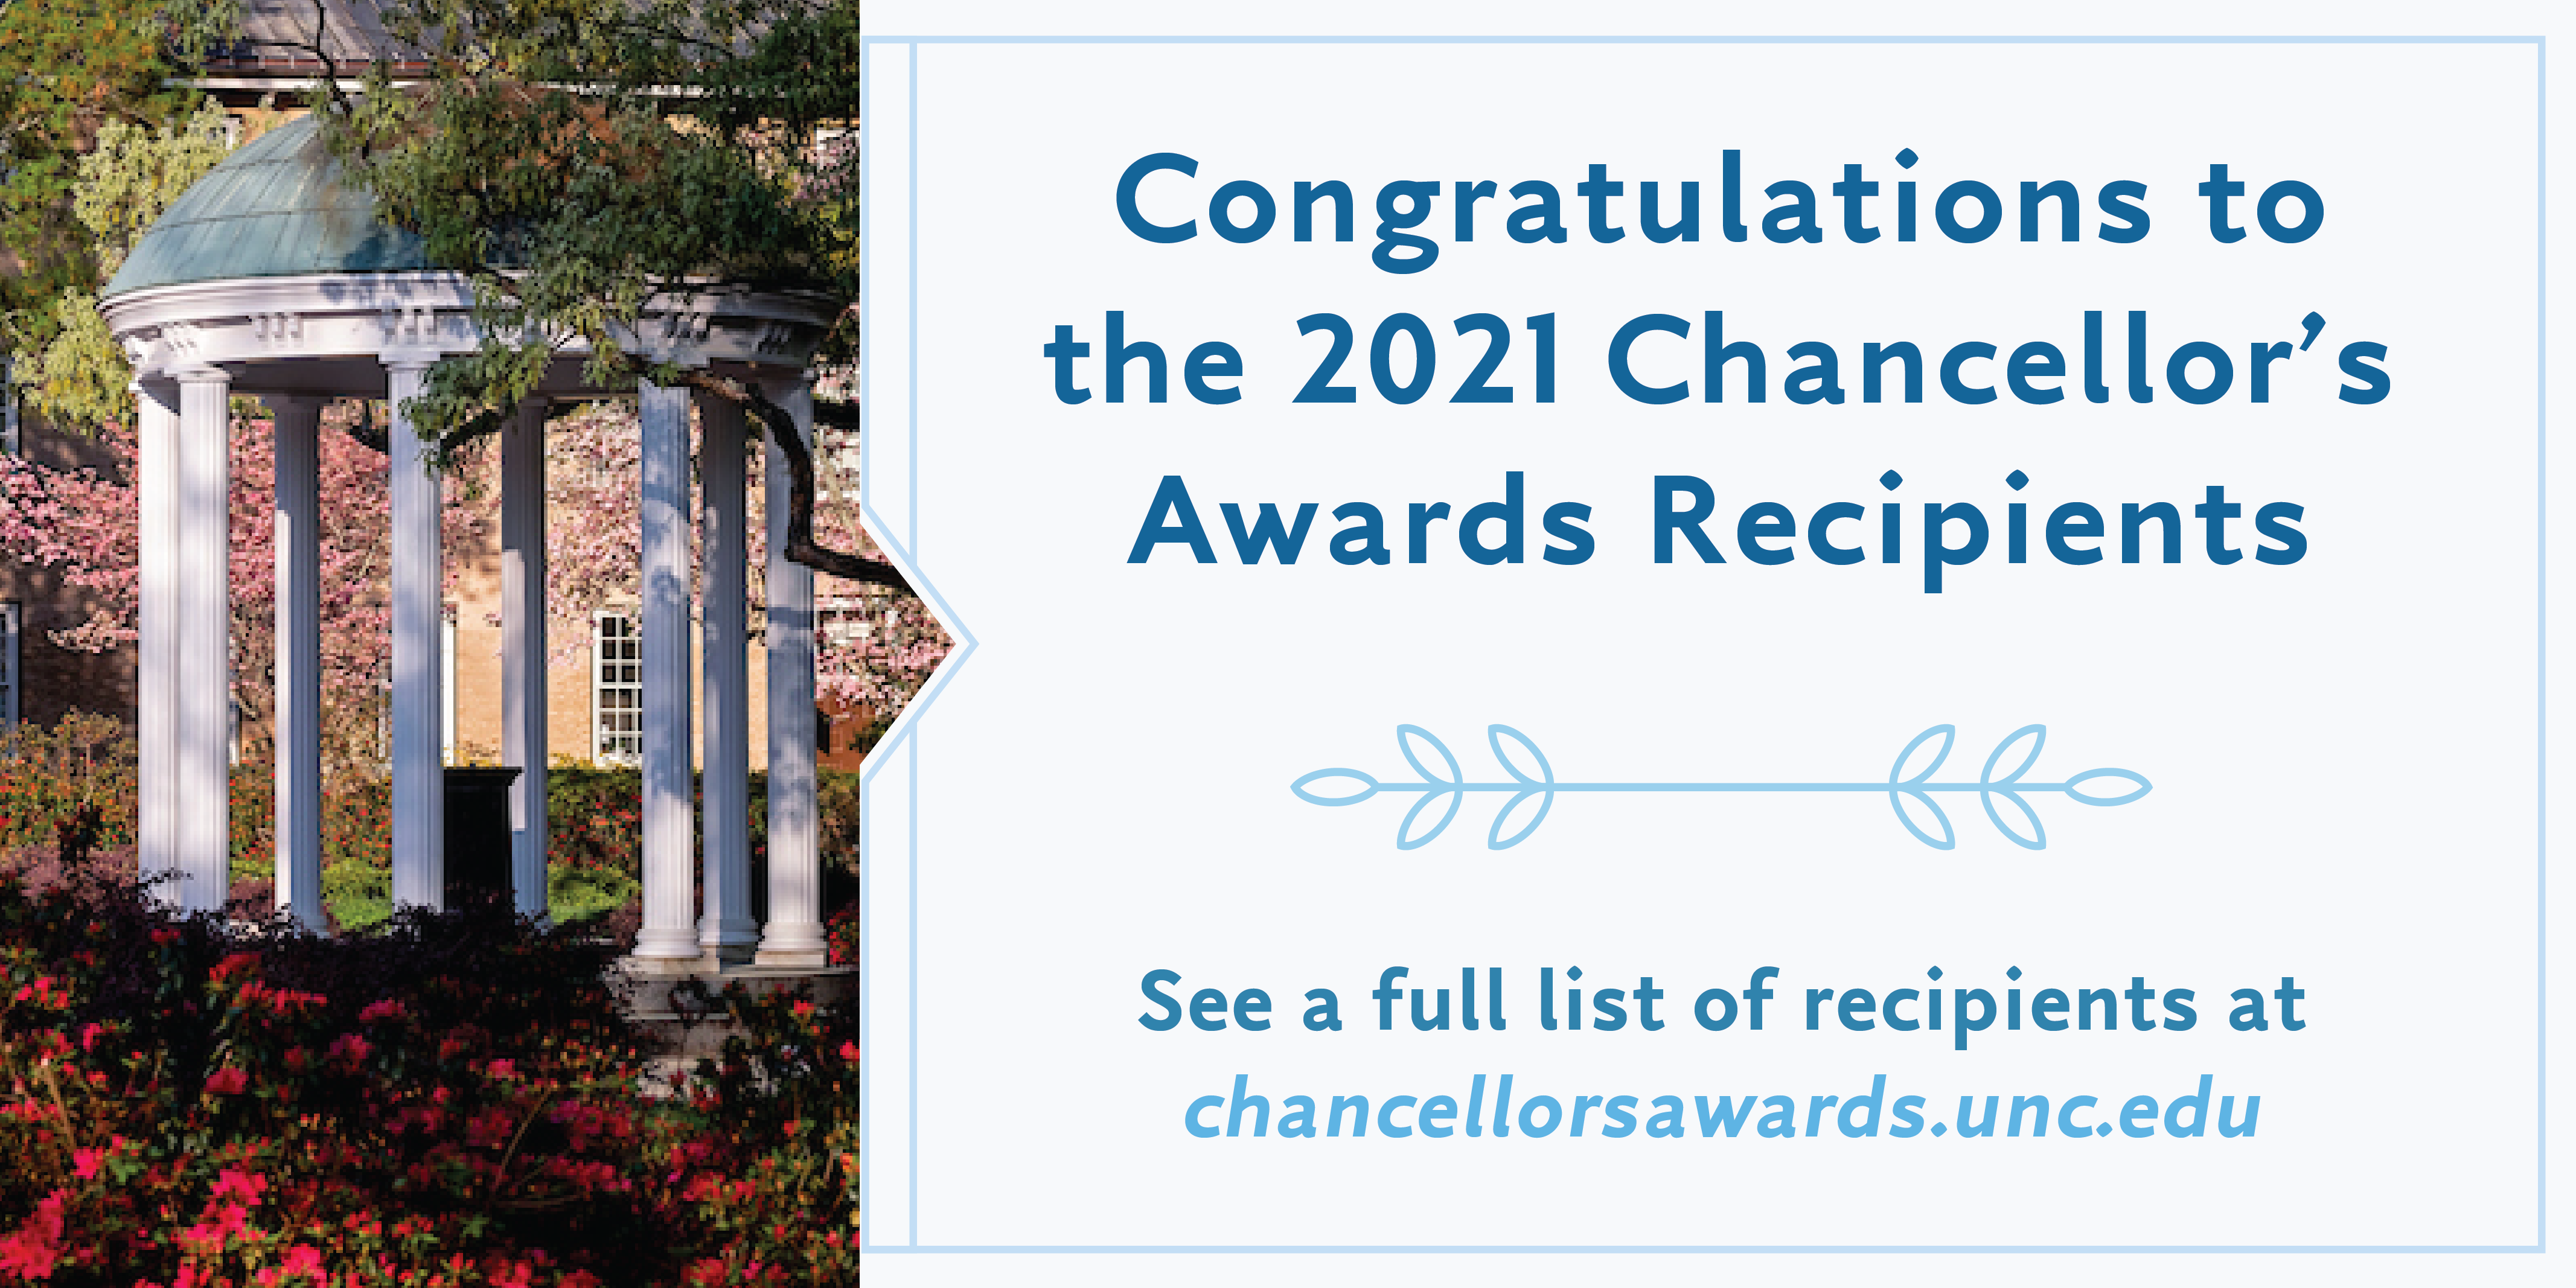 Photo of the Old Well and a congrats to the 2021 Chancellor's Awards recipient